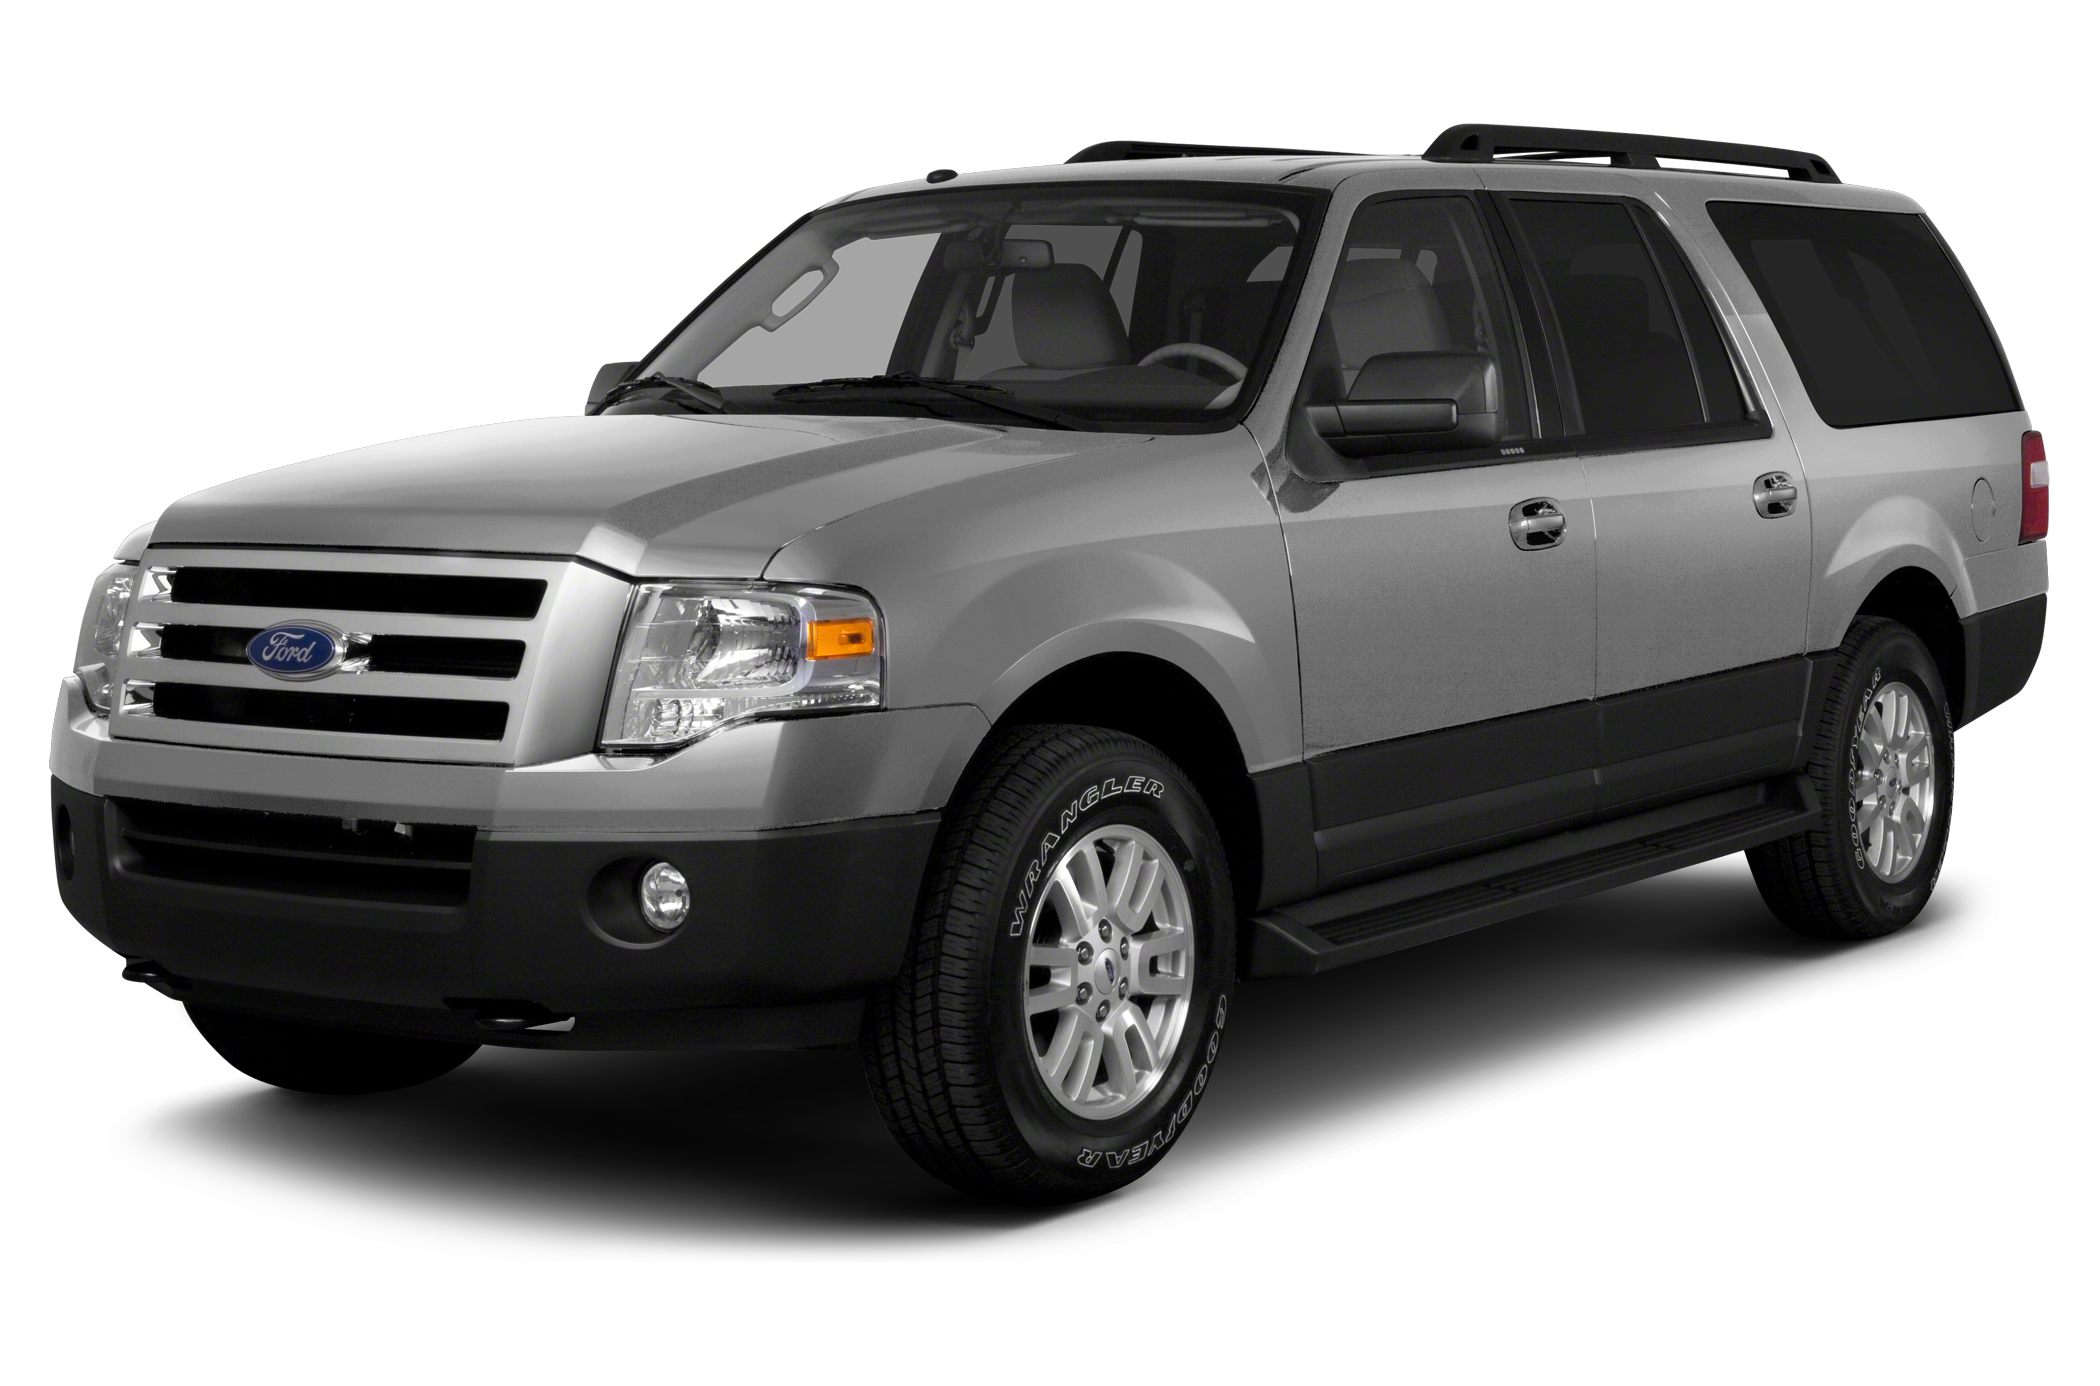 2014 Ford Expedition EL Limited Limited trim Third Row Seat HeatedCooled Leather Seats Rear Ai